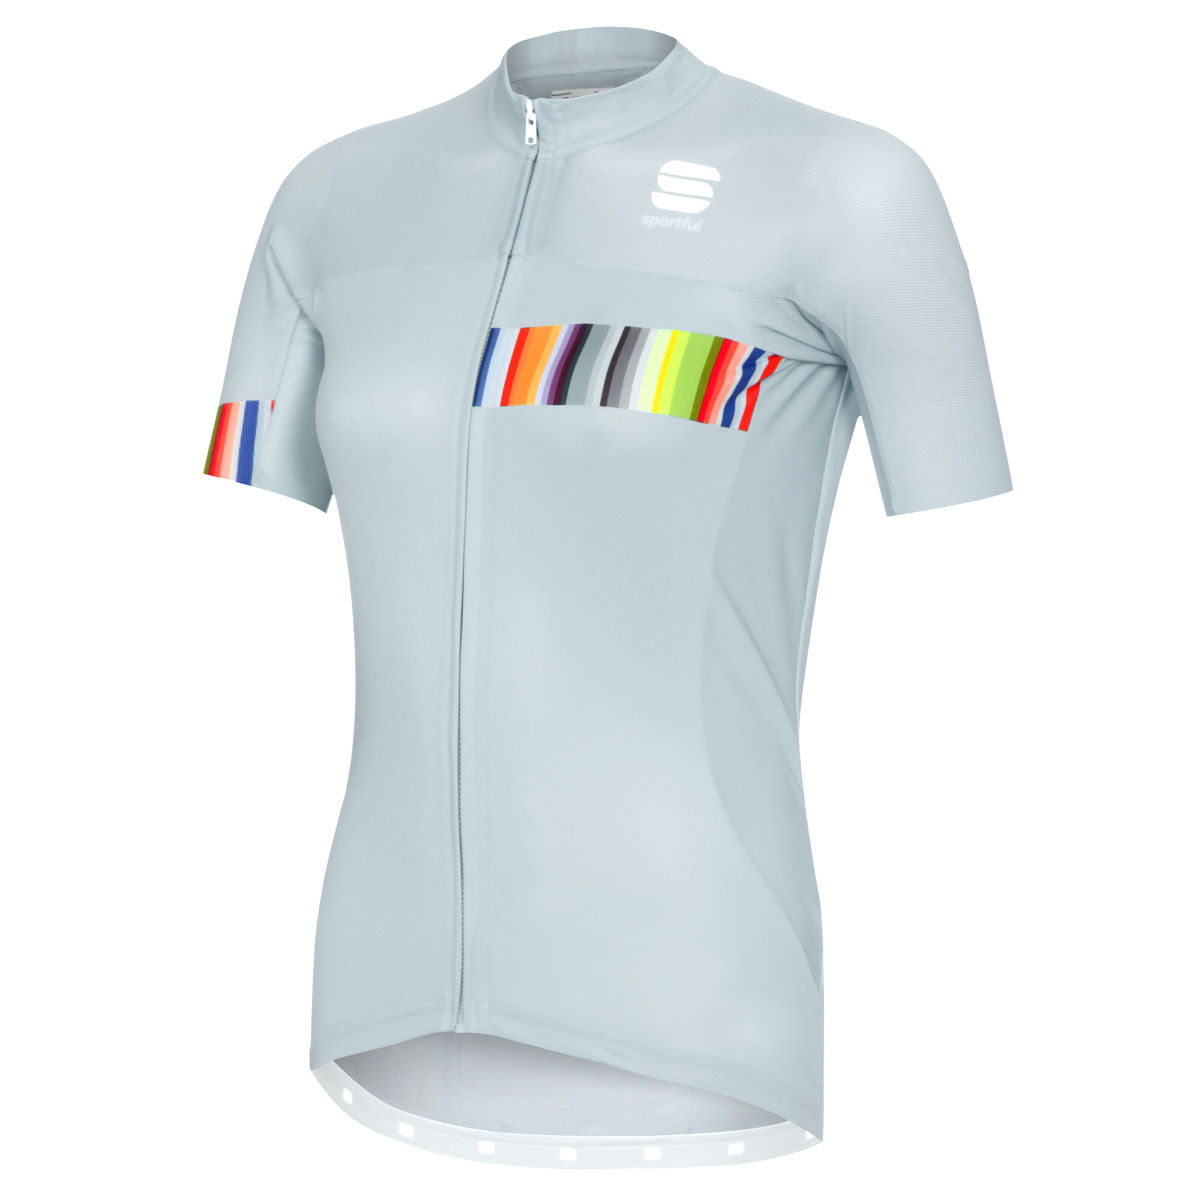 Maillot Femme Sportful Exclusive Rainbow BodyFit Team - XS Grey